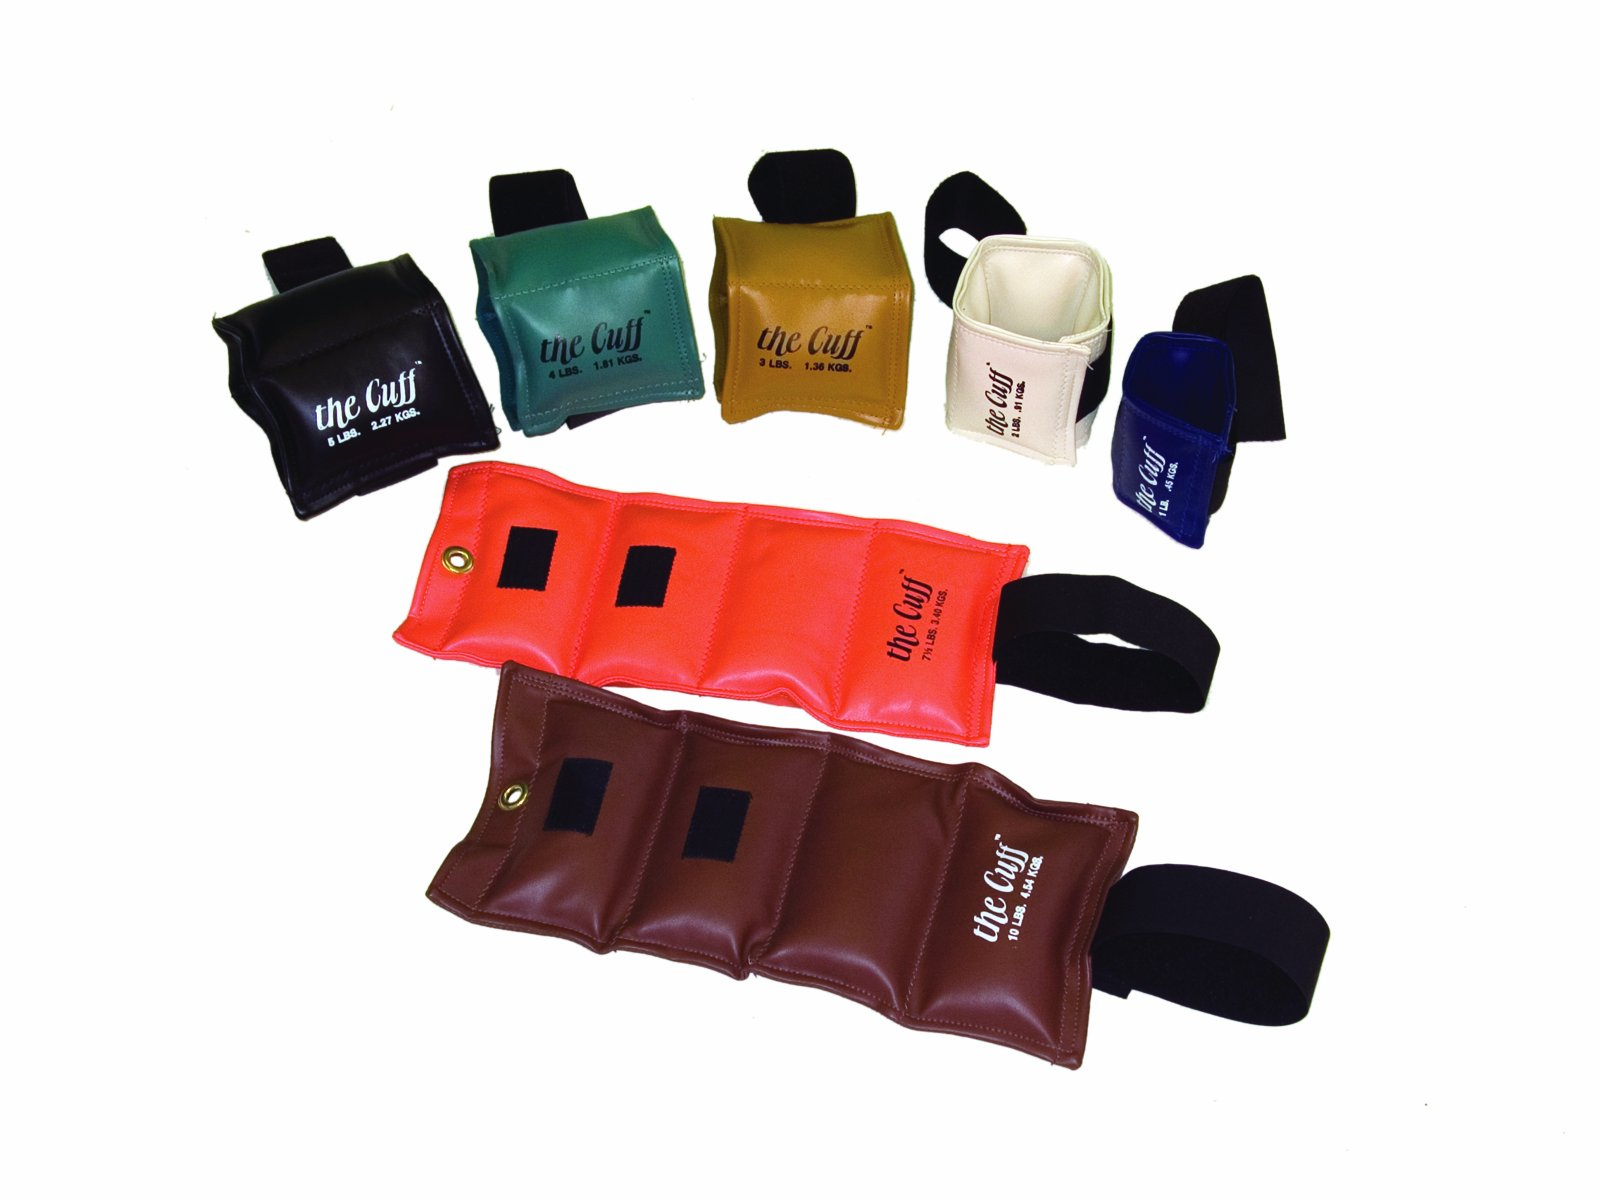 Cuff Rehabilitation Ankle And Wrist Weight 7 Piece Set - 1 Ea. 1, 2, 3, 4, 5, 7.5, 10 by the Cuff_